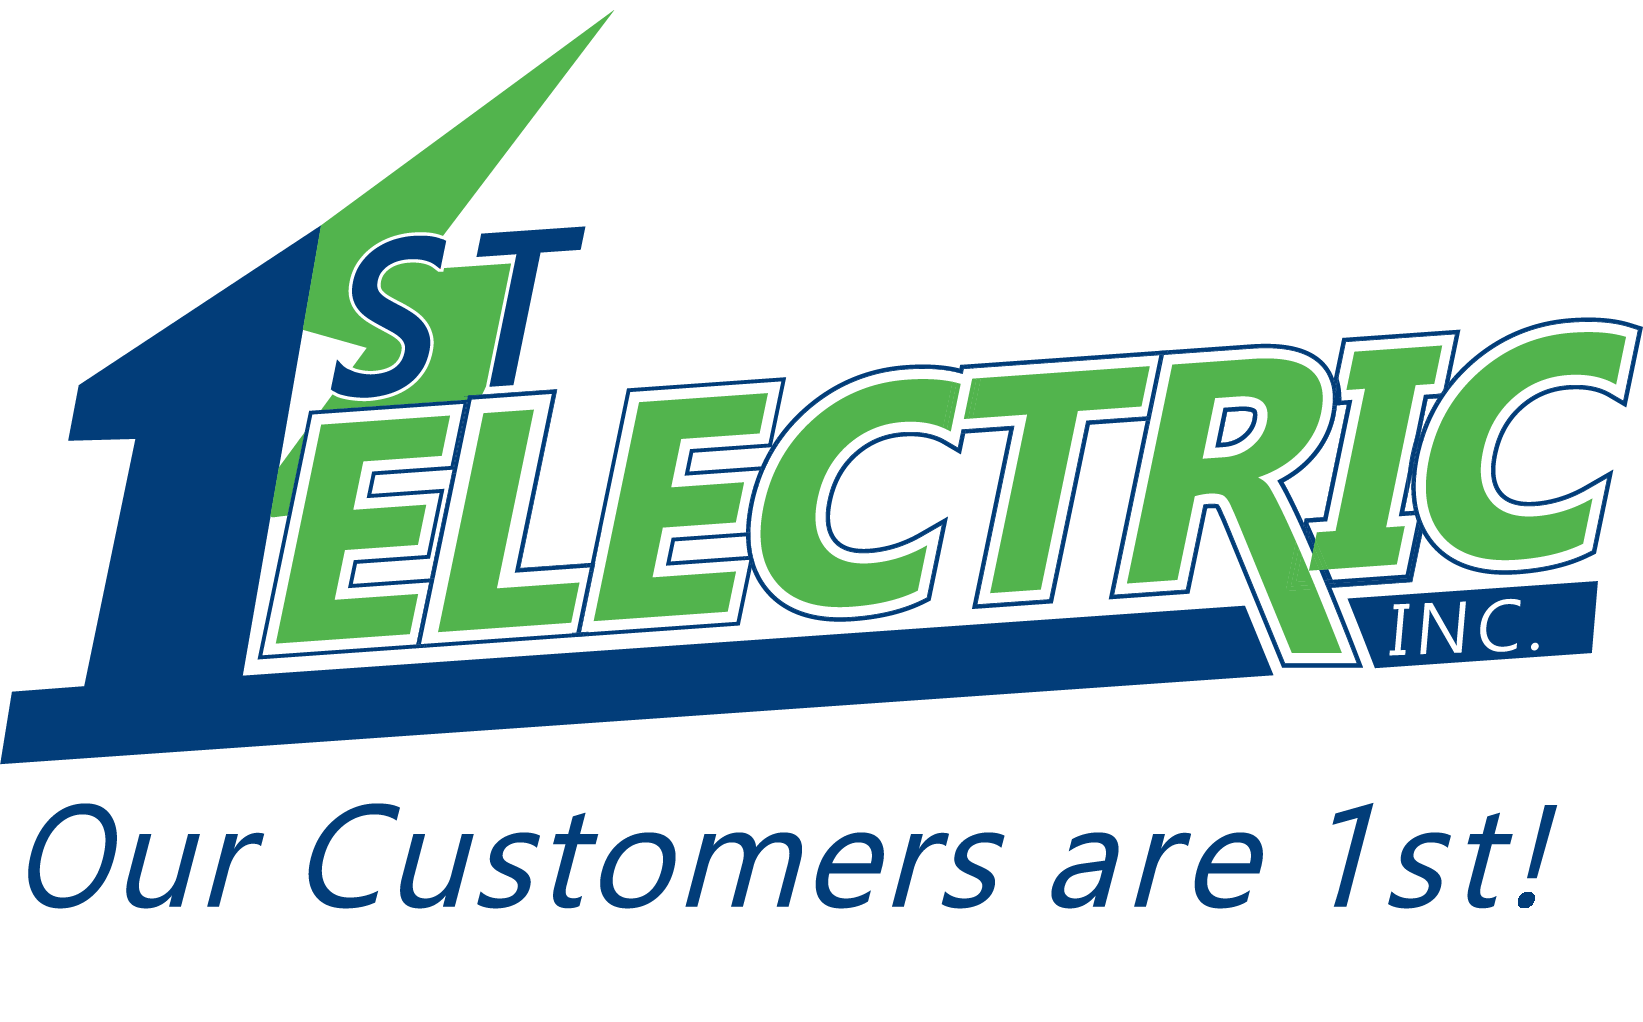 1st Electric